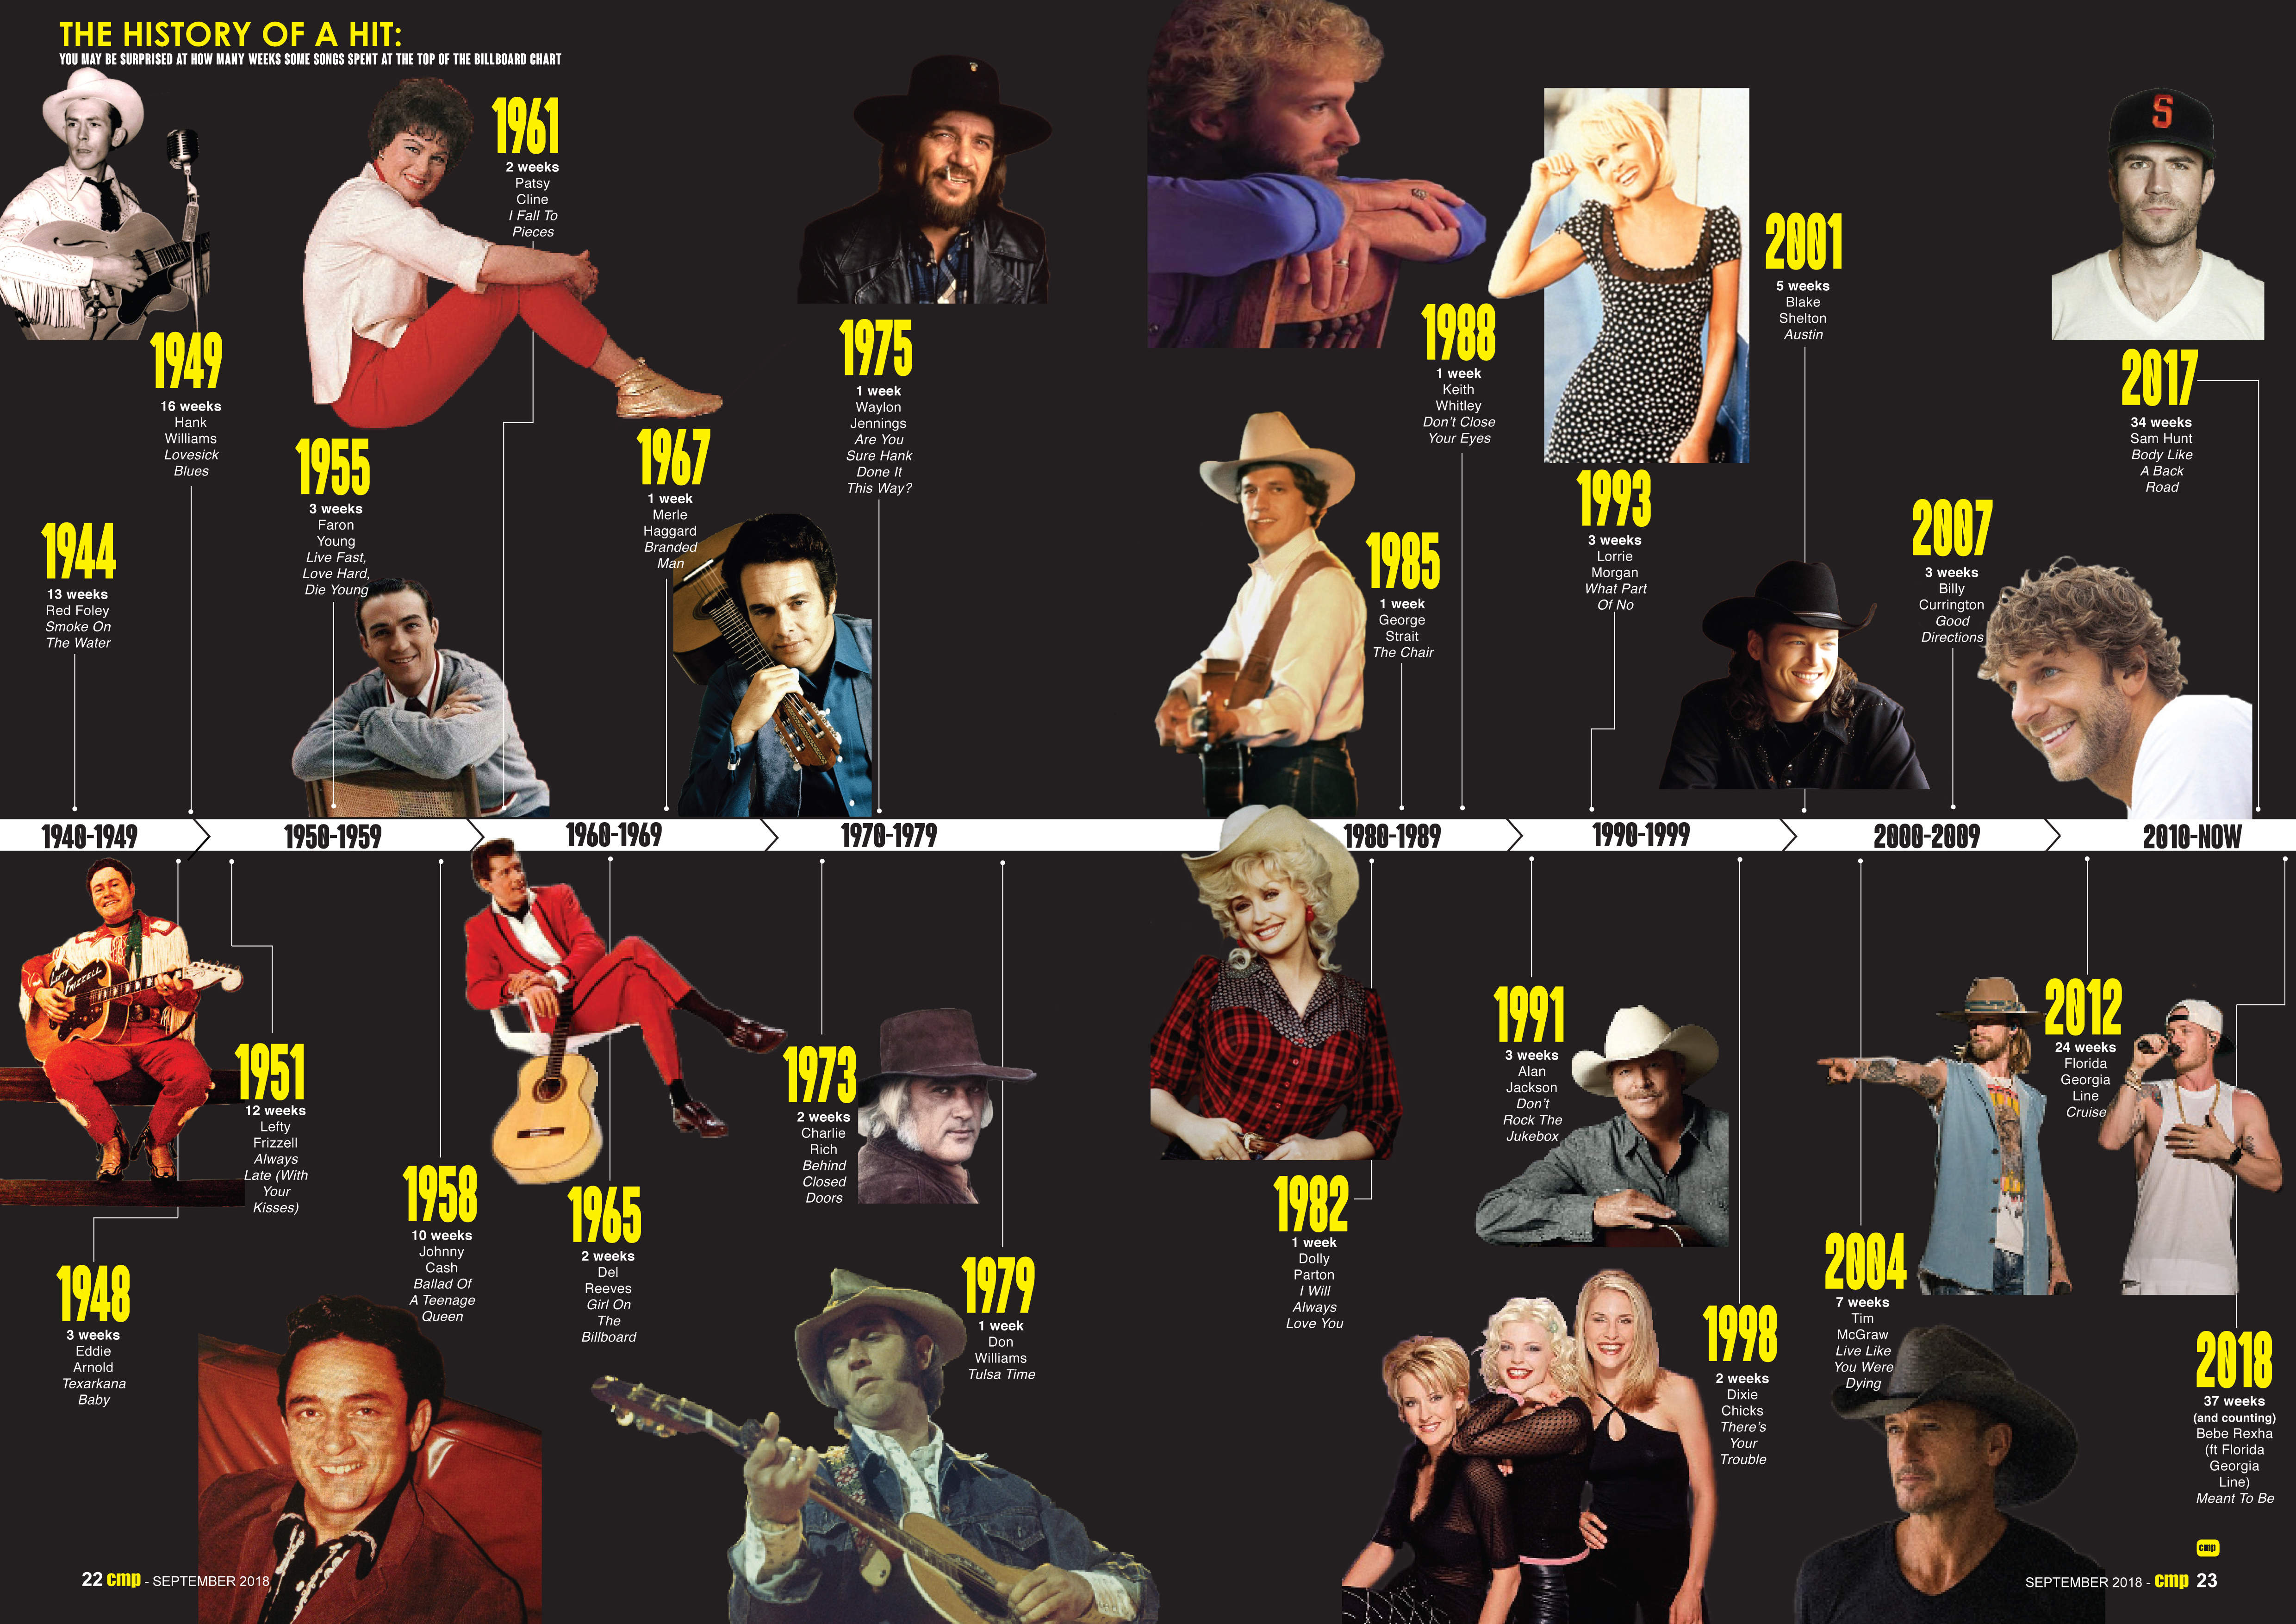 Hot Country Song Chart Toppers - The History Of A Hit